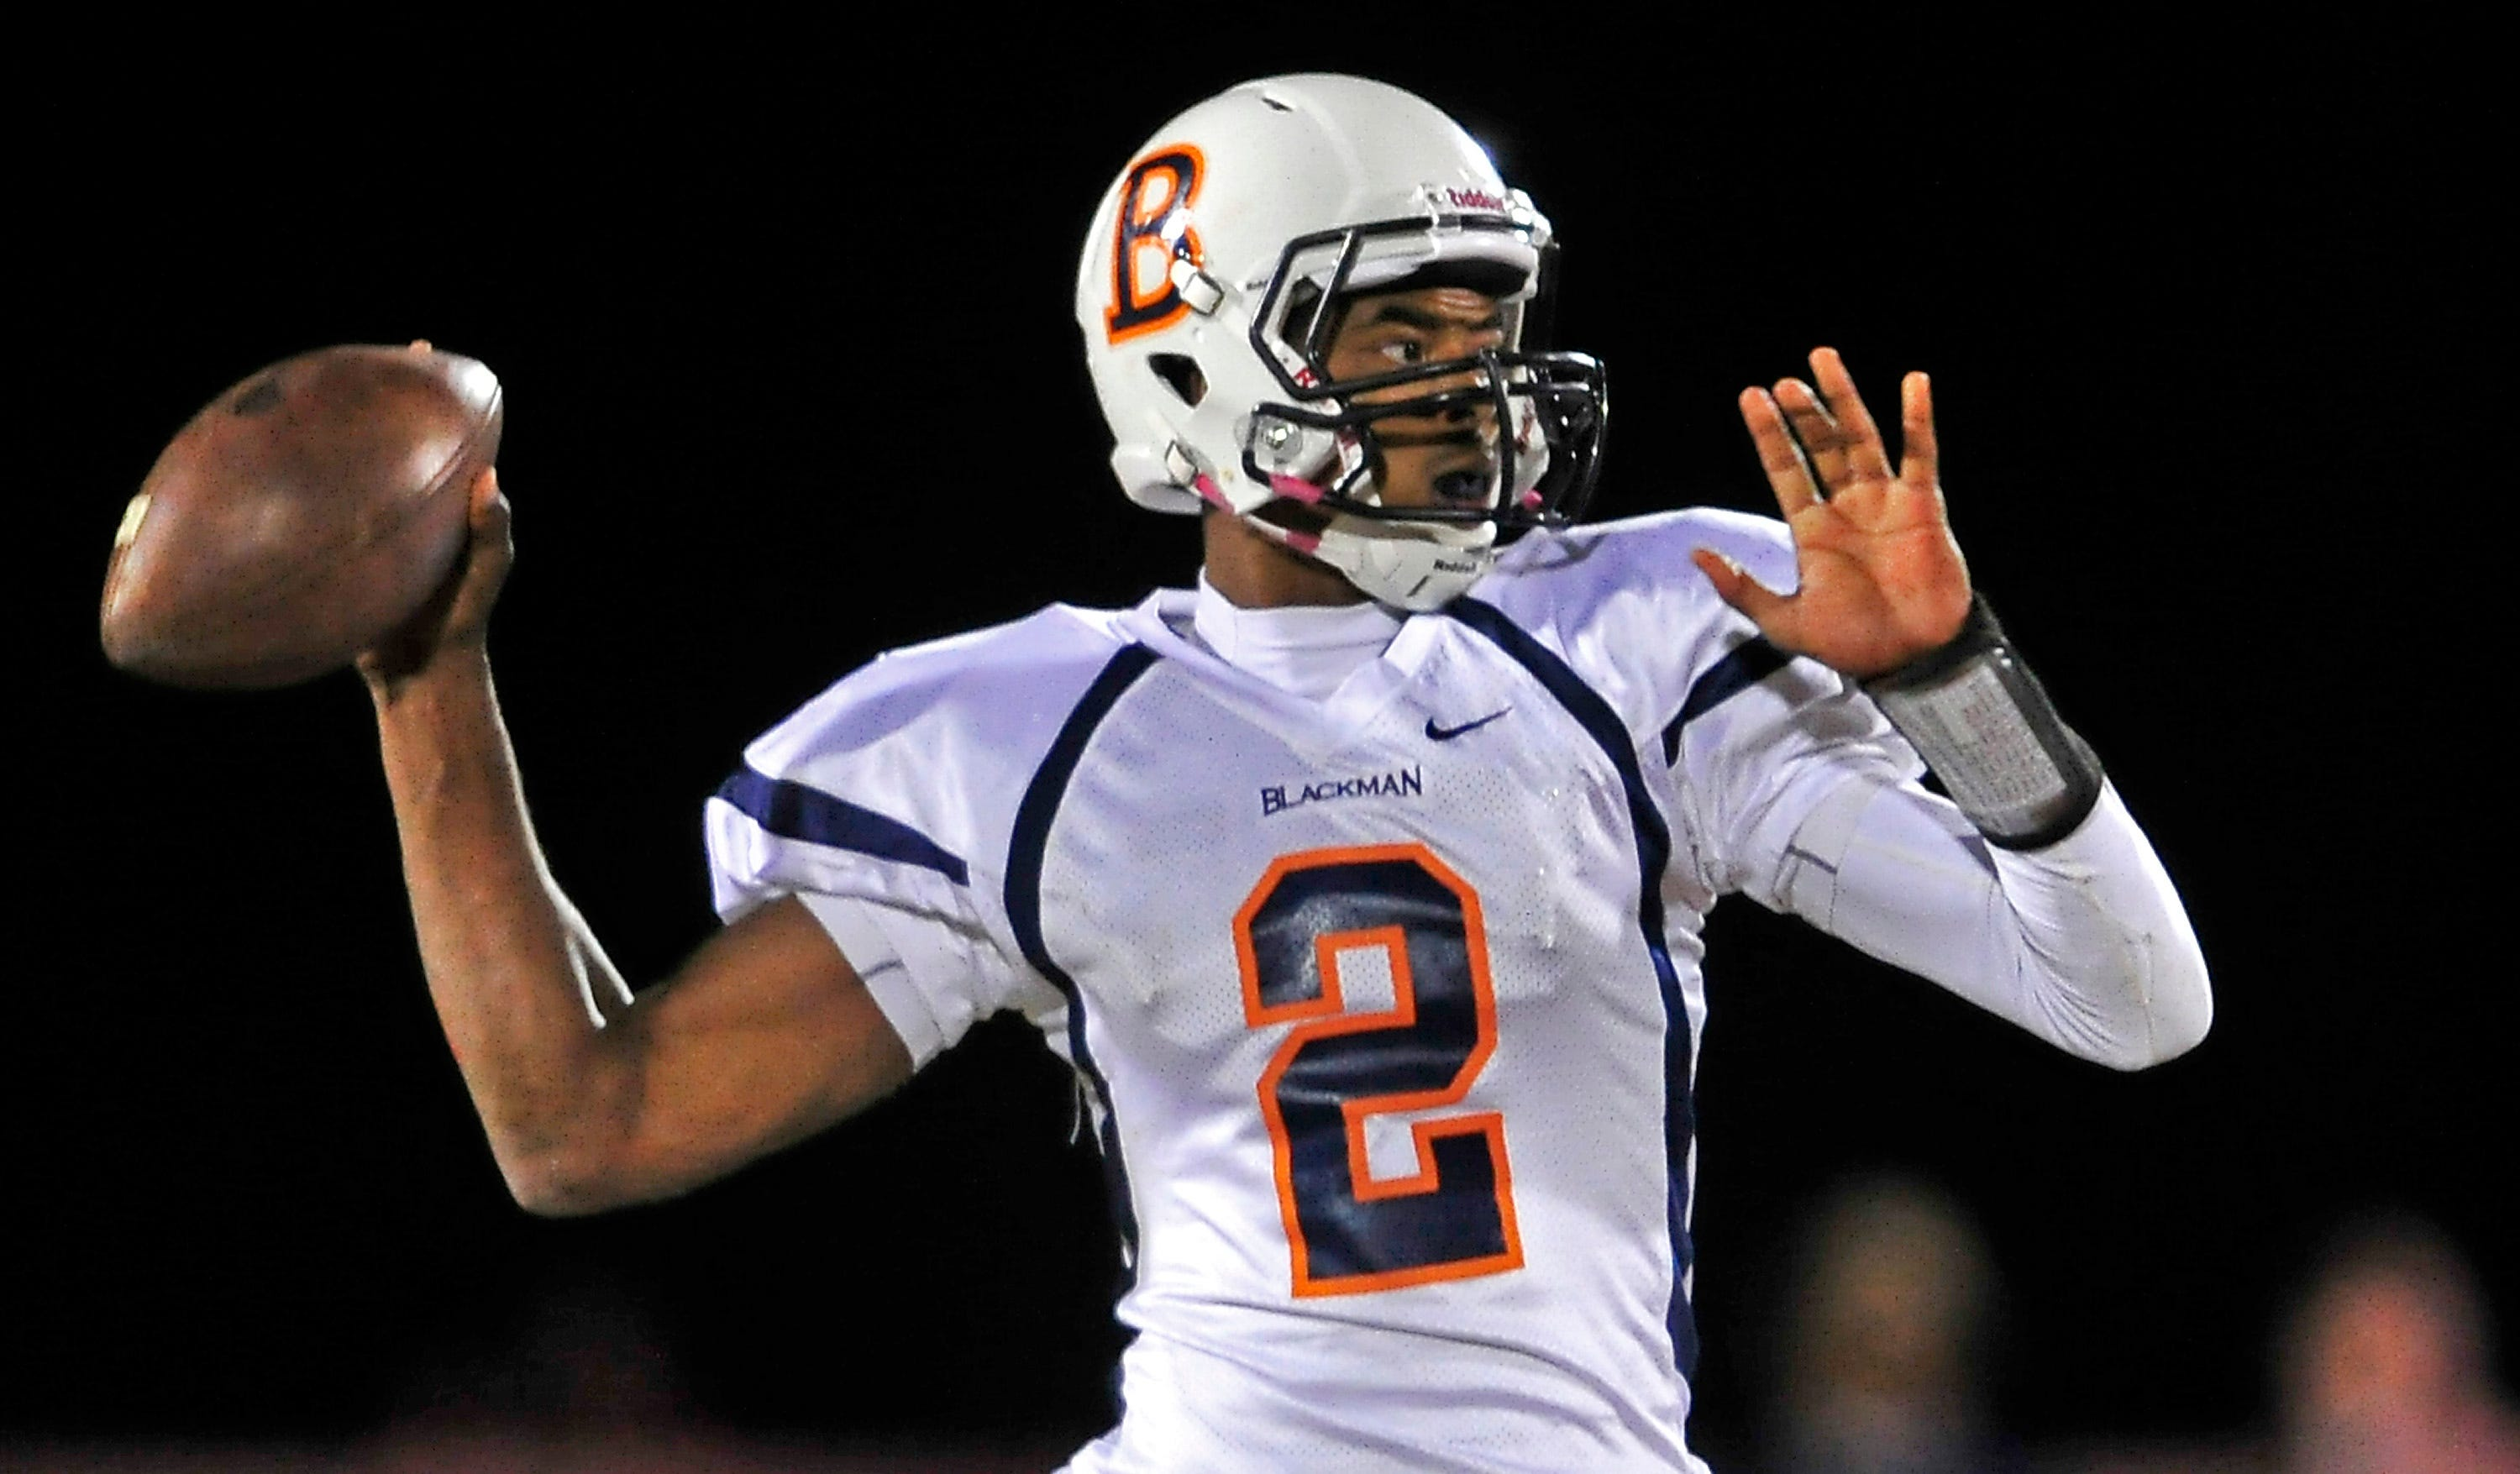 Blackman quarterback Jauan Jennings, rated the top football prospect in the state by 247Sports.com, passed for 1,462 yards and 14 touchdowns last season. He has committed to UT.